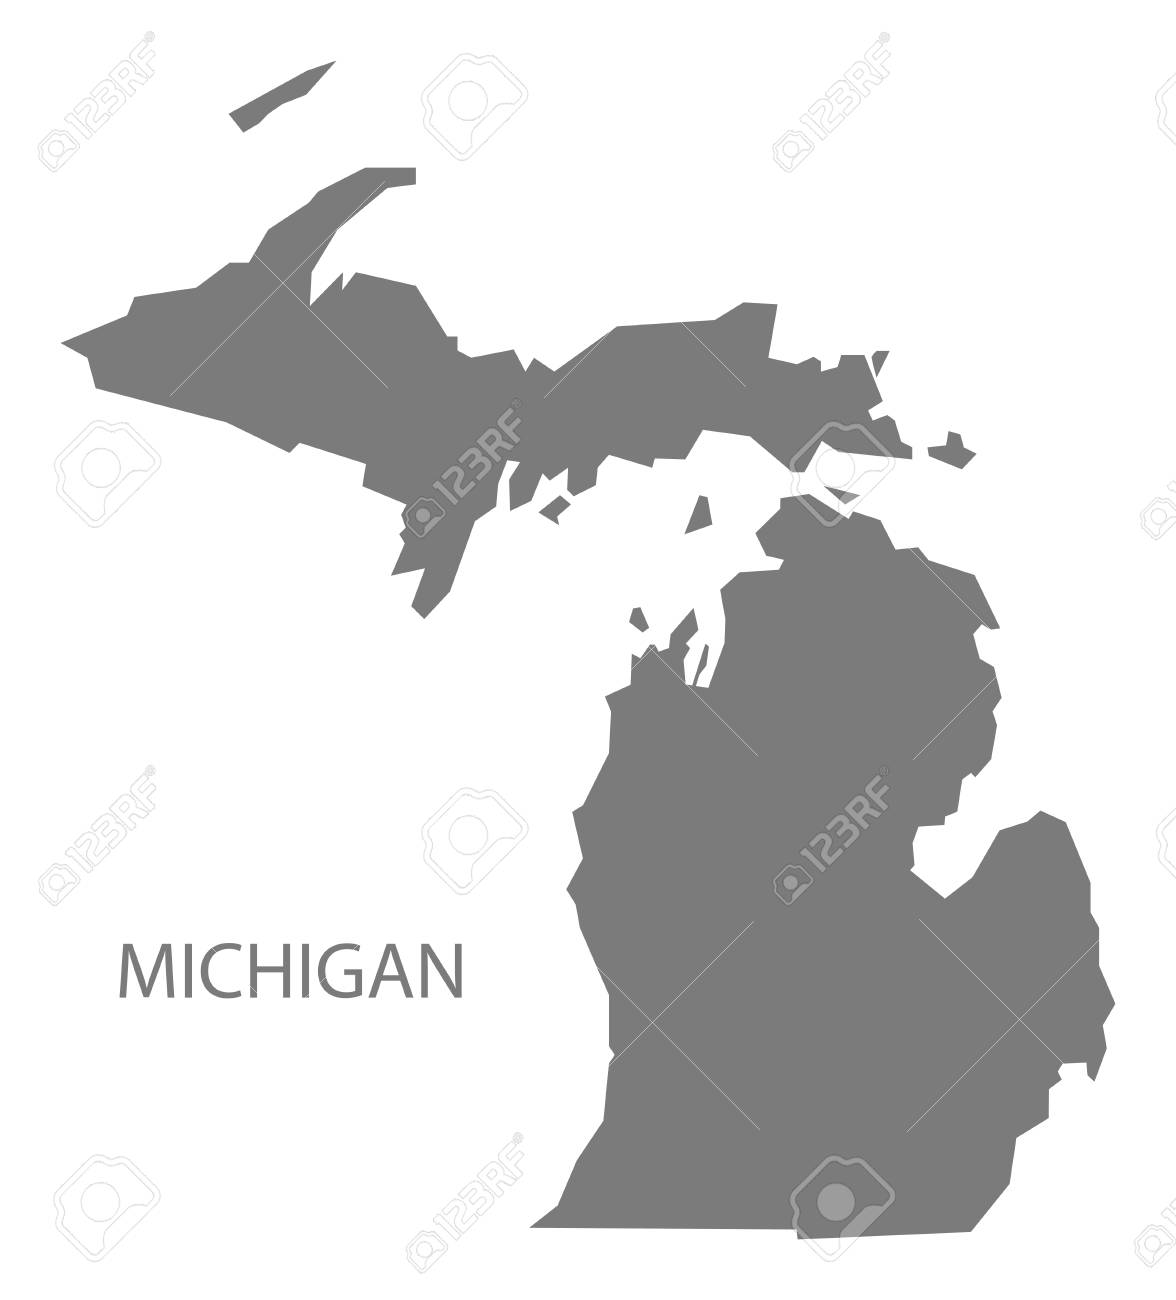 Michigan On Usa Map.Michigan Usa Map In Grey Royalty Free Cliparts Vectors And Stock